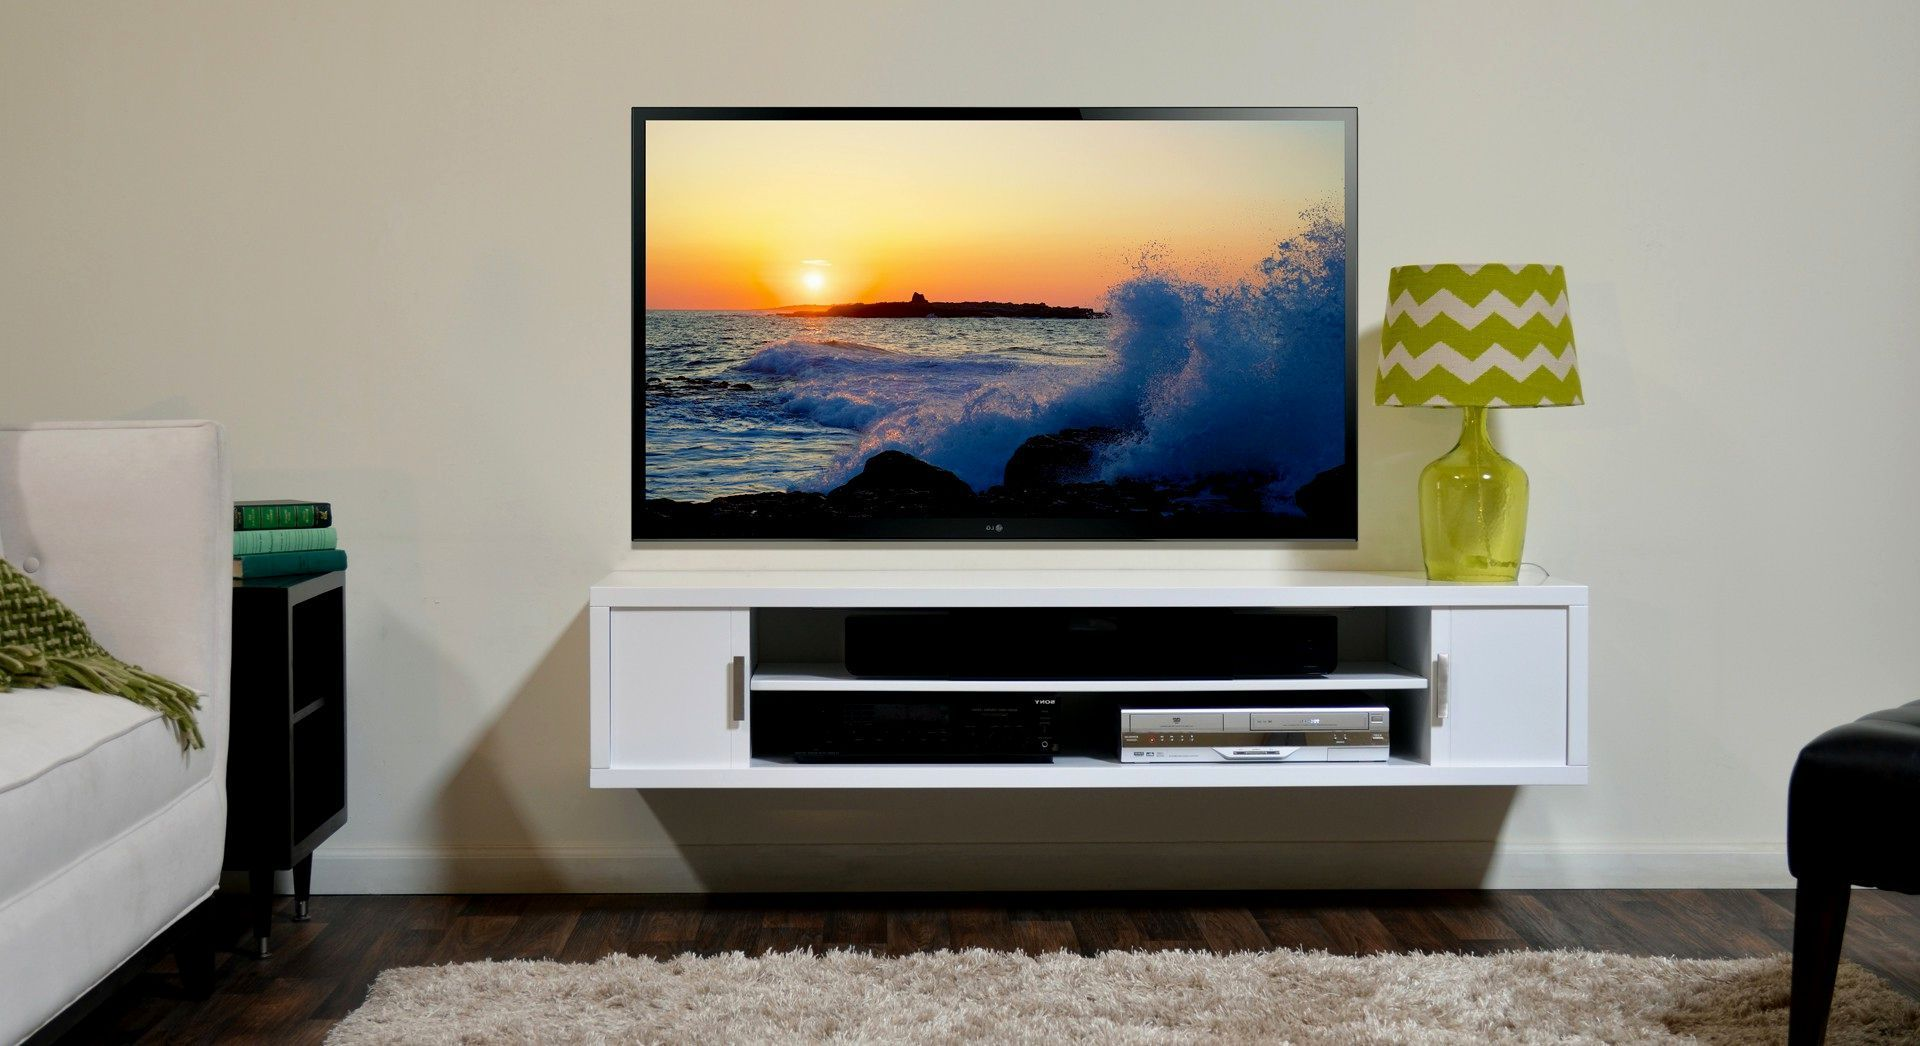 37 Wall Mounted TV Ideas Interior and Decor for Your Inspirations